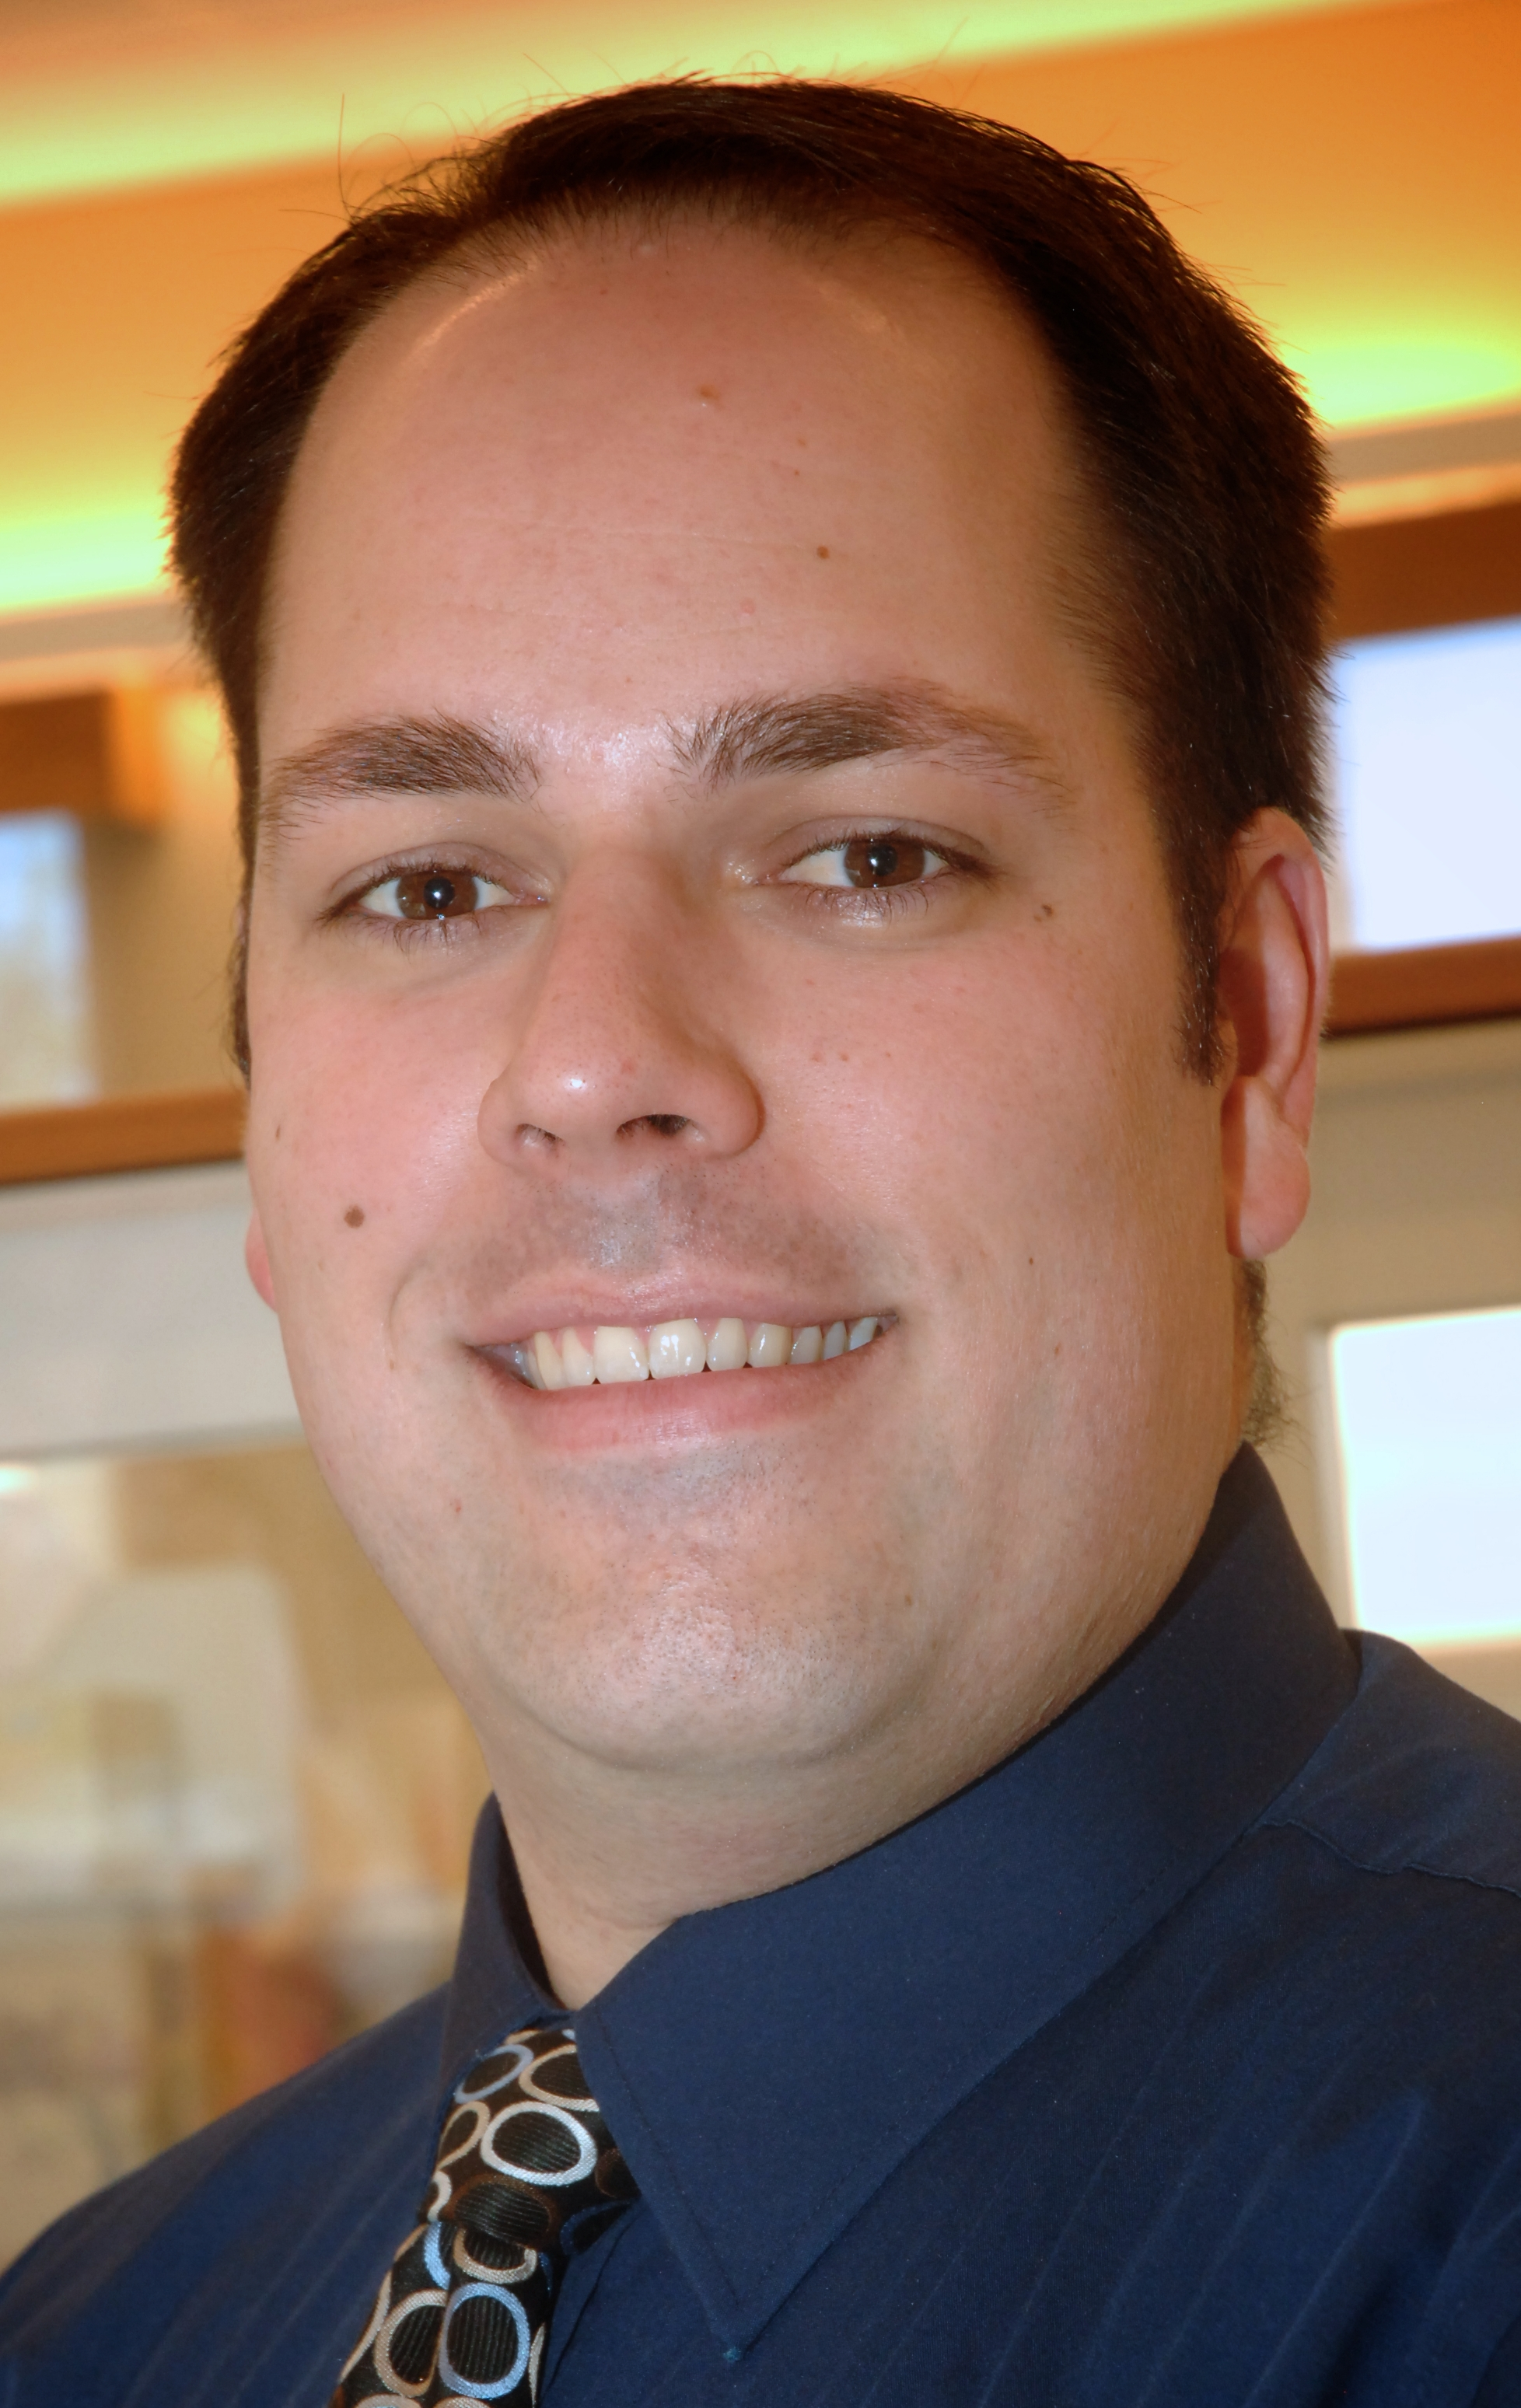 By Justin Hyde, New Mexico Market Manager, Accion